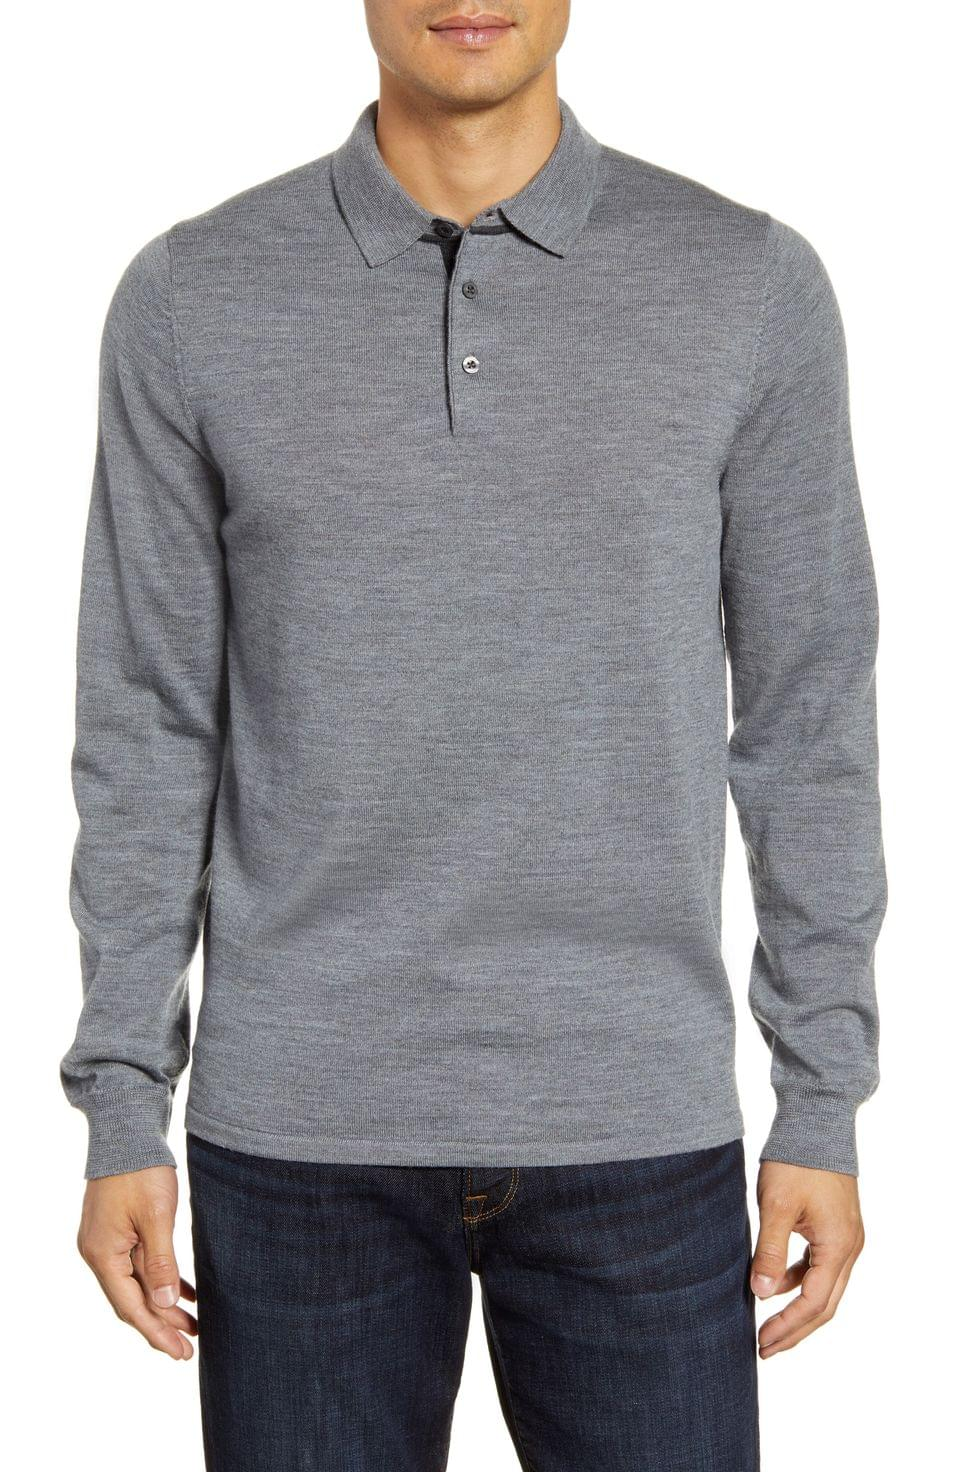 Men's Nordstrom Men's Shop Merino Wool Polo Sweater